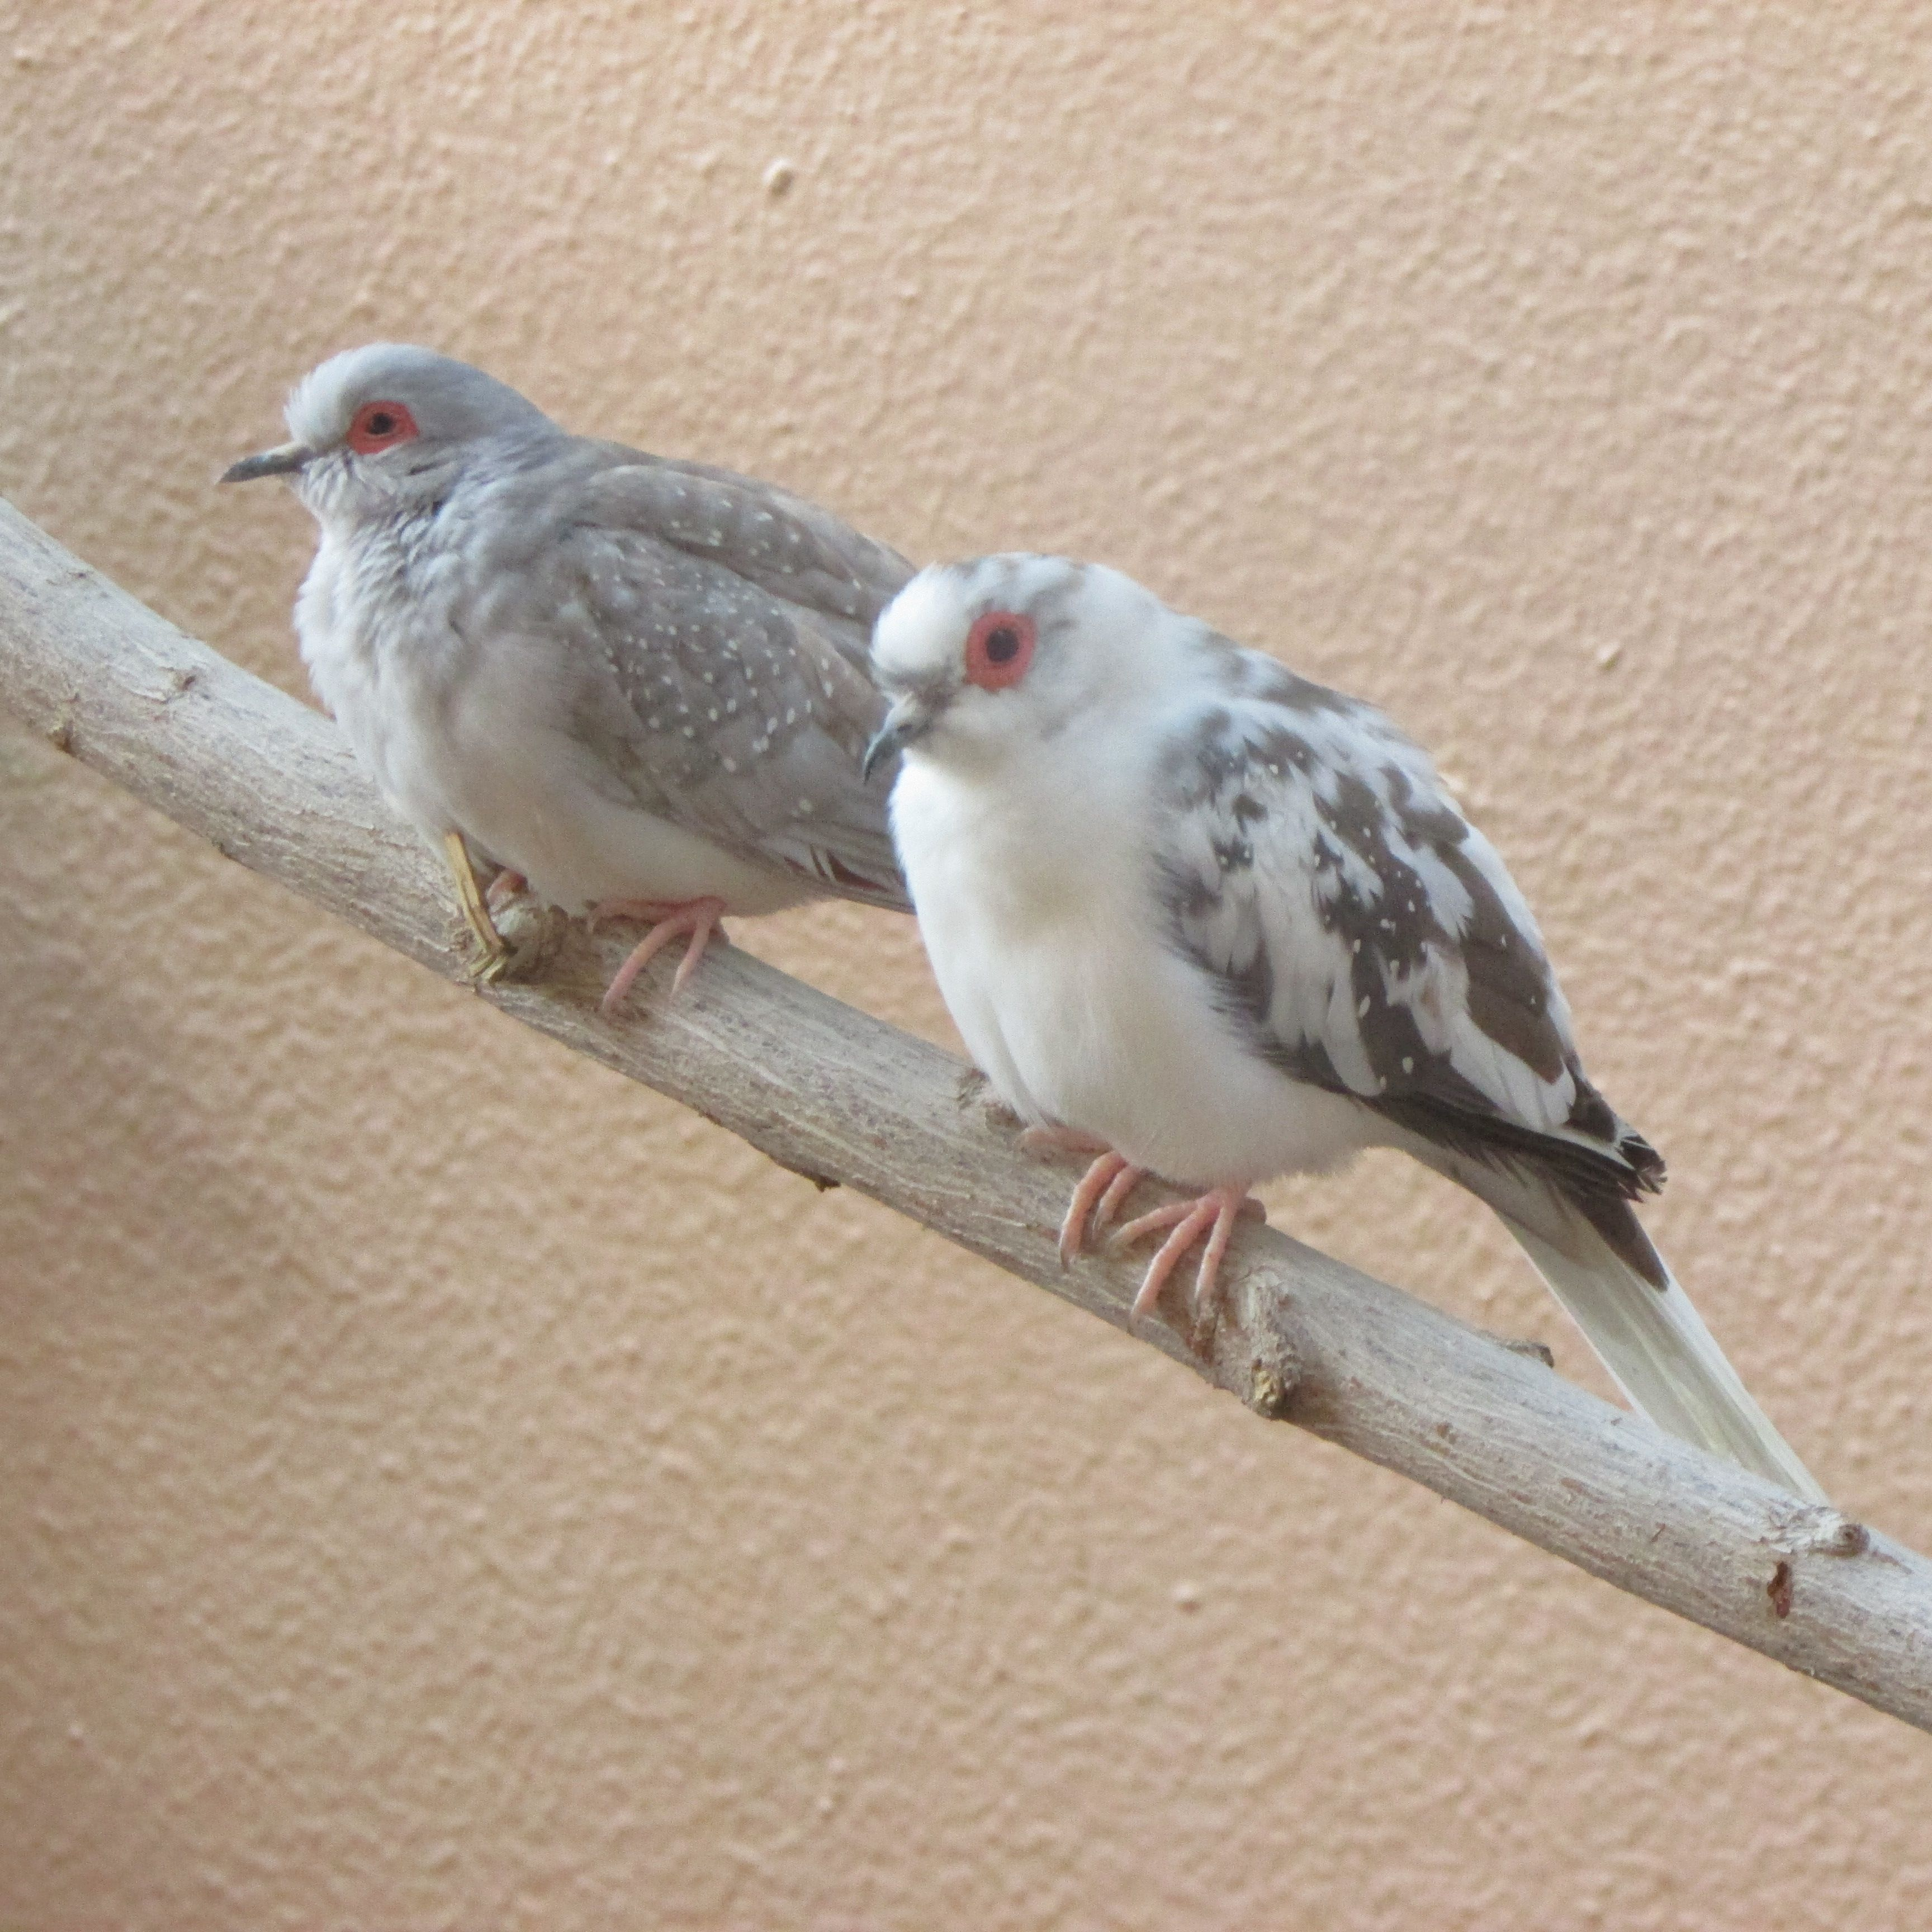 Fuego Ultimate Redred Male Diamond Dove On The Left And Chicharo